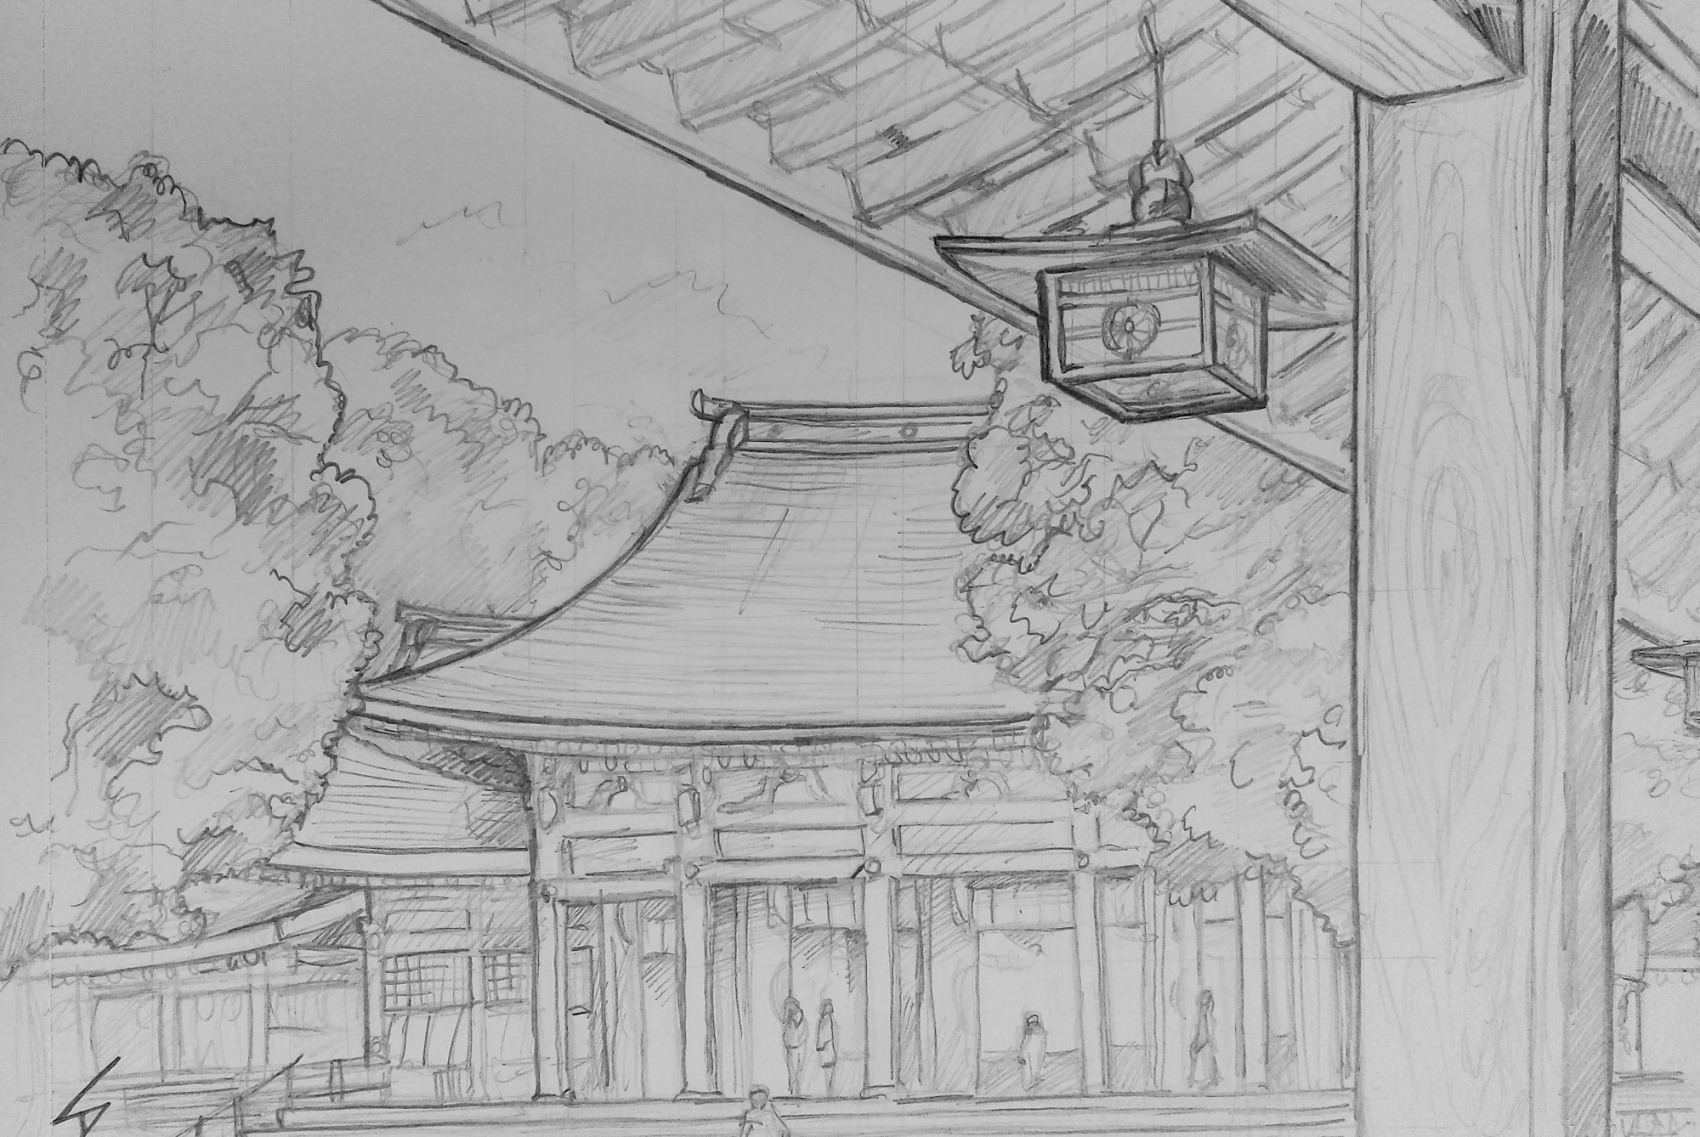 Urban art – Shibuya, Tokyo, Japan. 'Meiji Shrine.' Artwork from my travel art blog article 'Sakura Japan.' sketchbookexplorer.com @davidasutton @sketchbookexplorer Facebook.com/davidanthonysutton #sketch #drawing #art #japan #tokyo #meijishrine #samurai #meiji #travel #travelblog #cherryblossom #cherryblossomseason